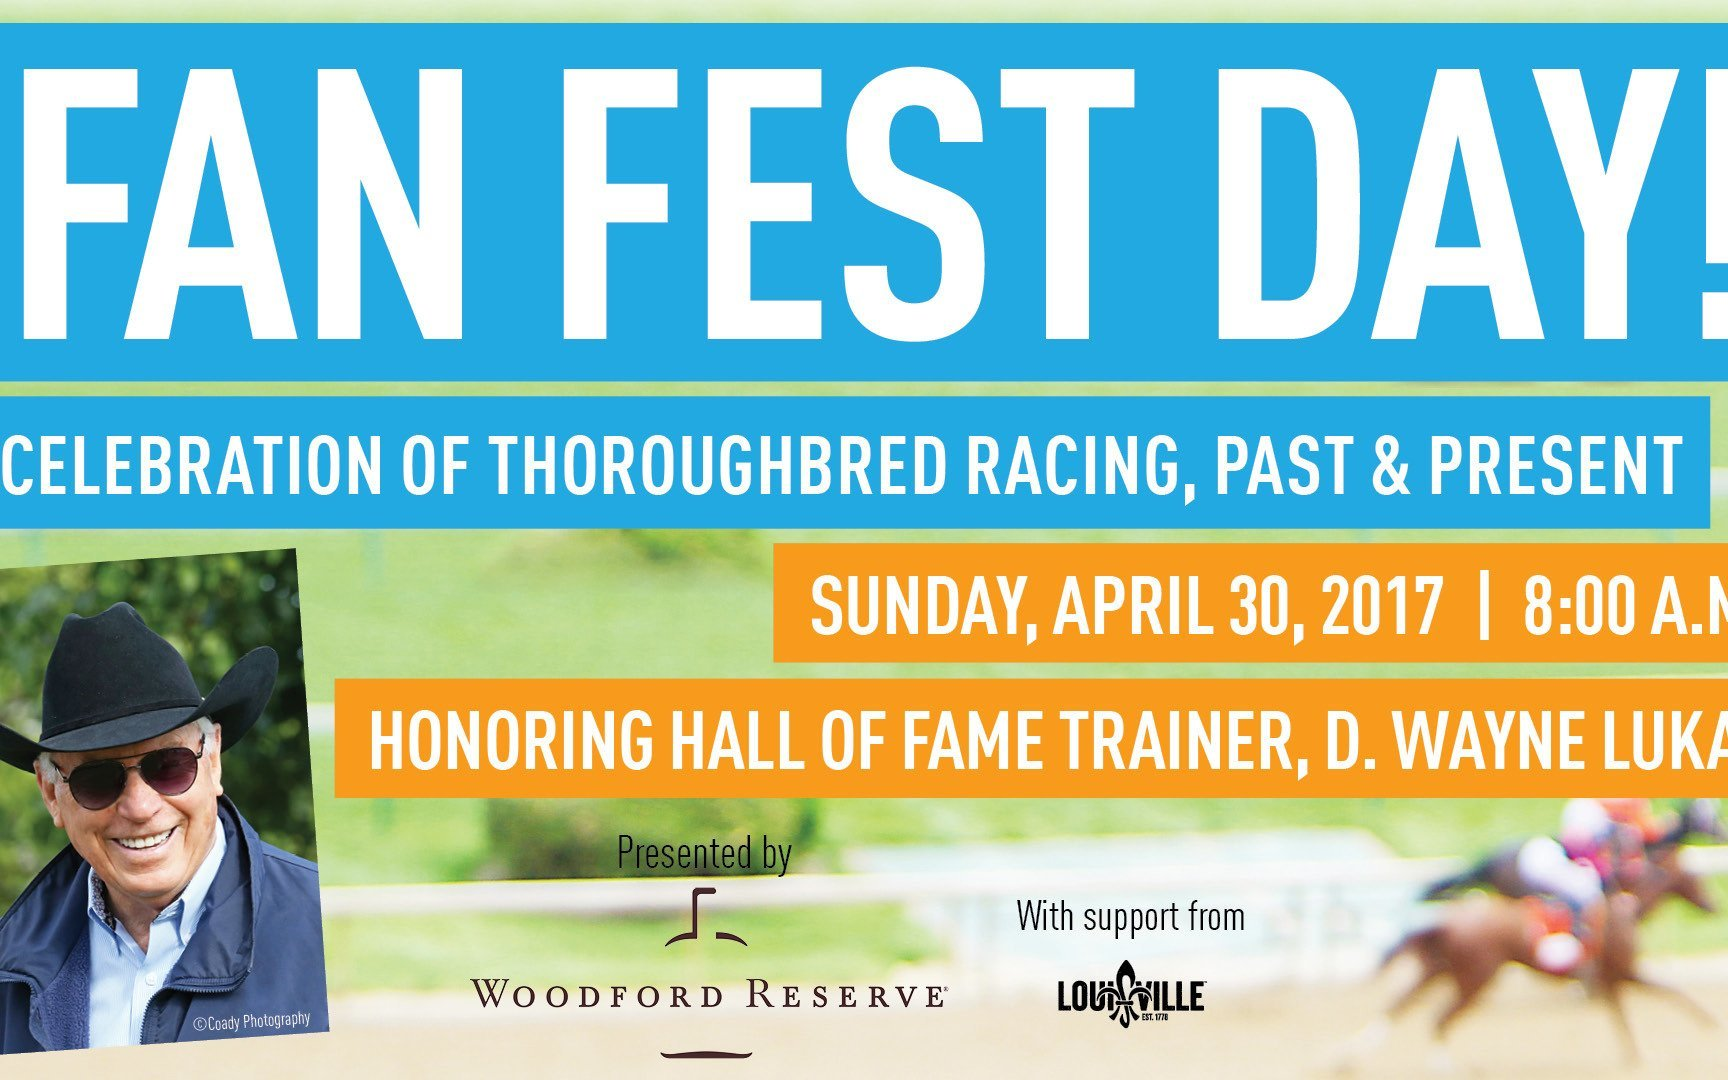 Second annual Fan Fest Day, presented by Woodford Reserve, at the Kentucky Derby Museum to celebrate career of four-time Kentucky Derby winning trainer D. Wayne Lukas